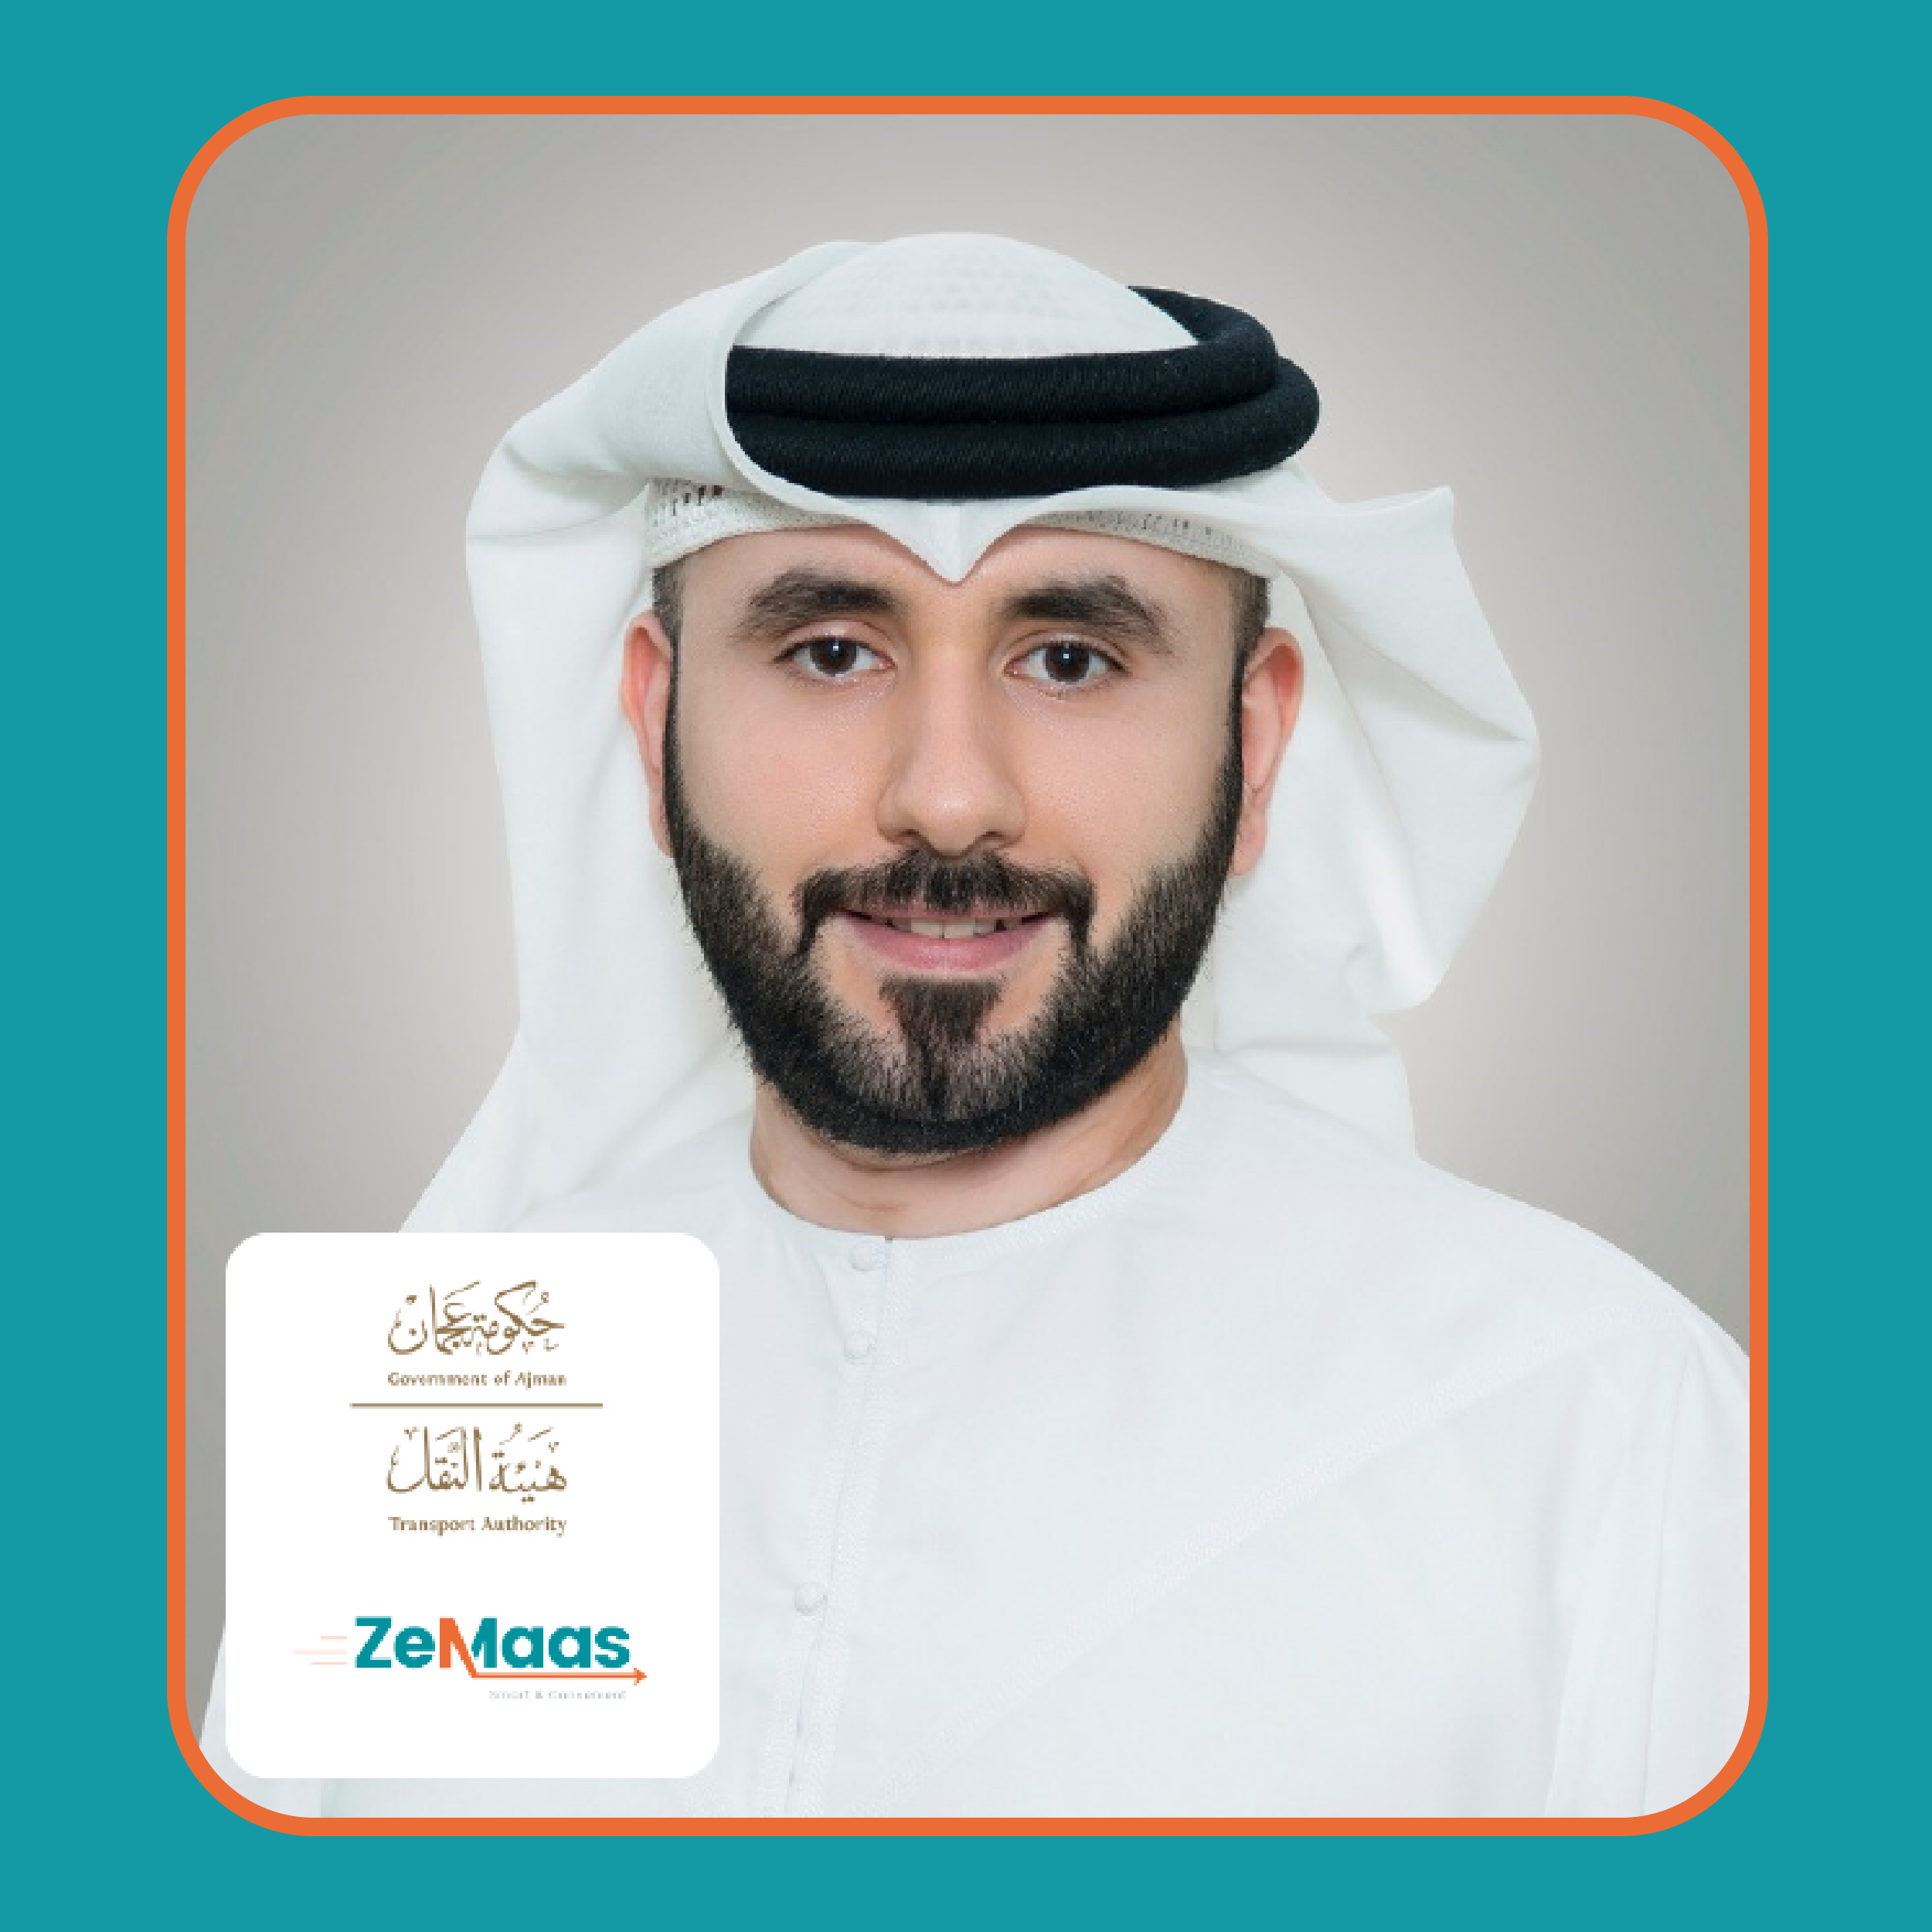 Ajman Transport Authority Signs an MoU with ZeMaas Technologies to Govern the Delivery and Logistics Domain in the Emirate